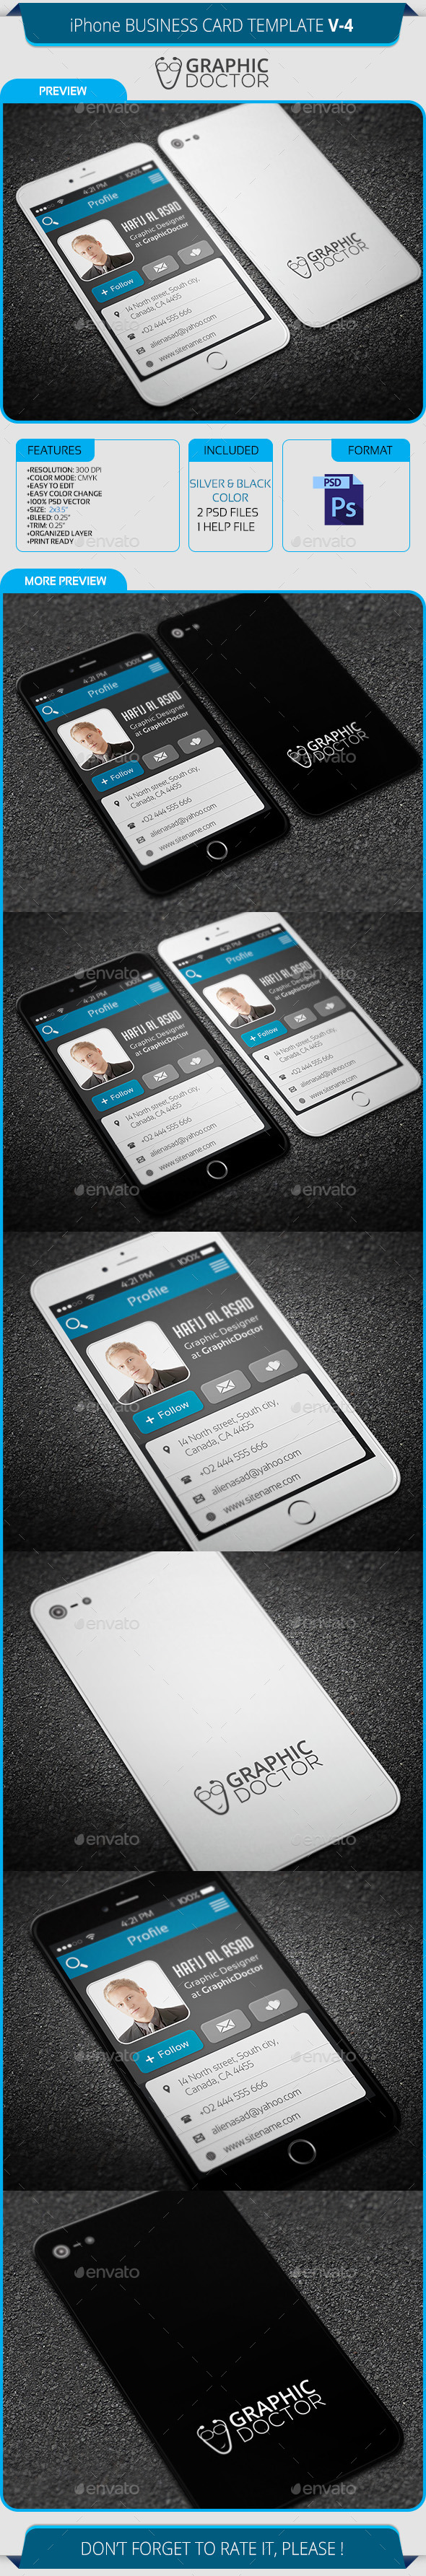 GraphicRiver iPhone Business Card Template V-4 8907051